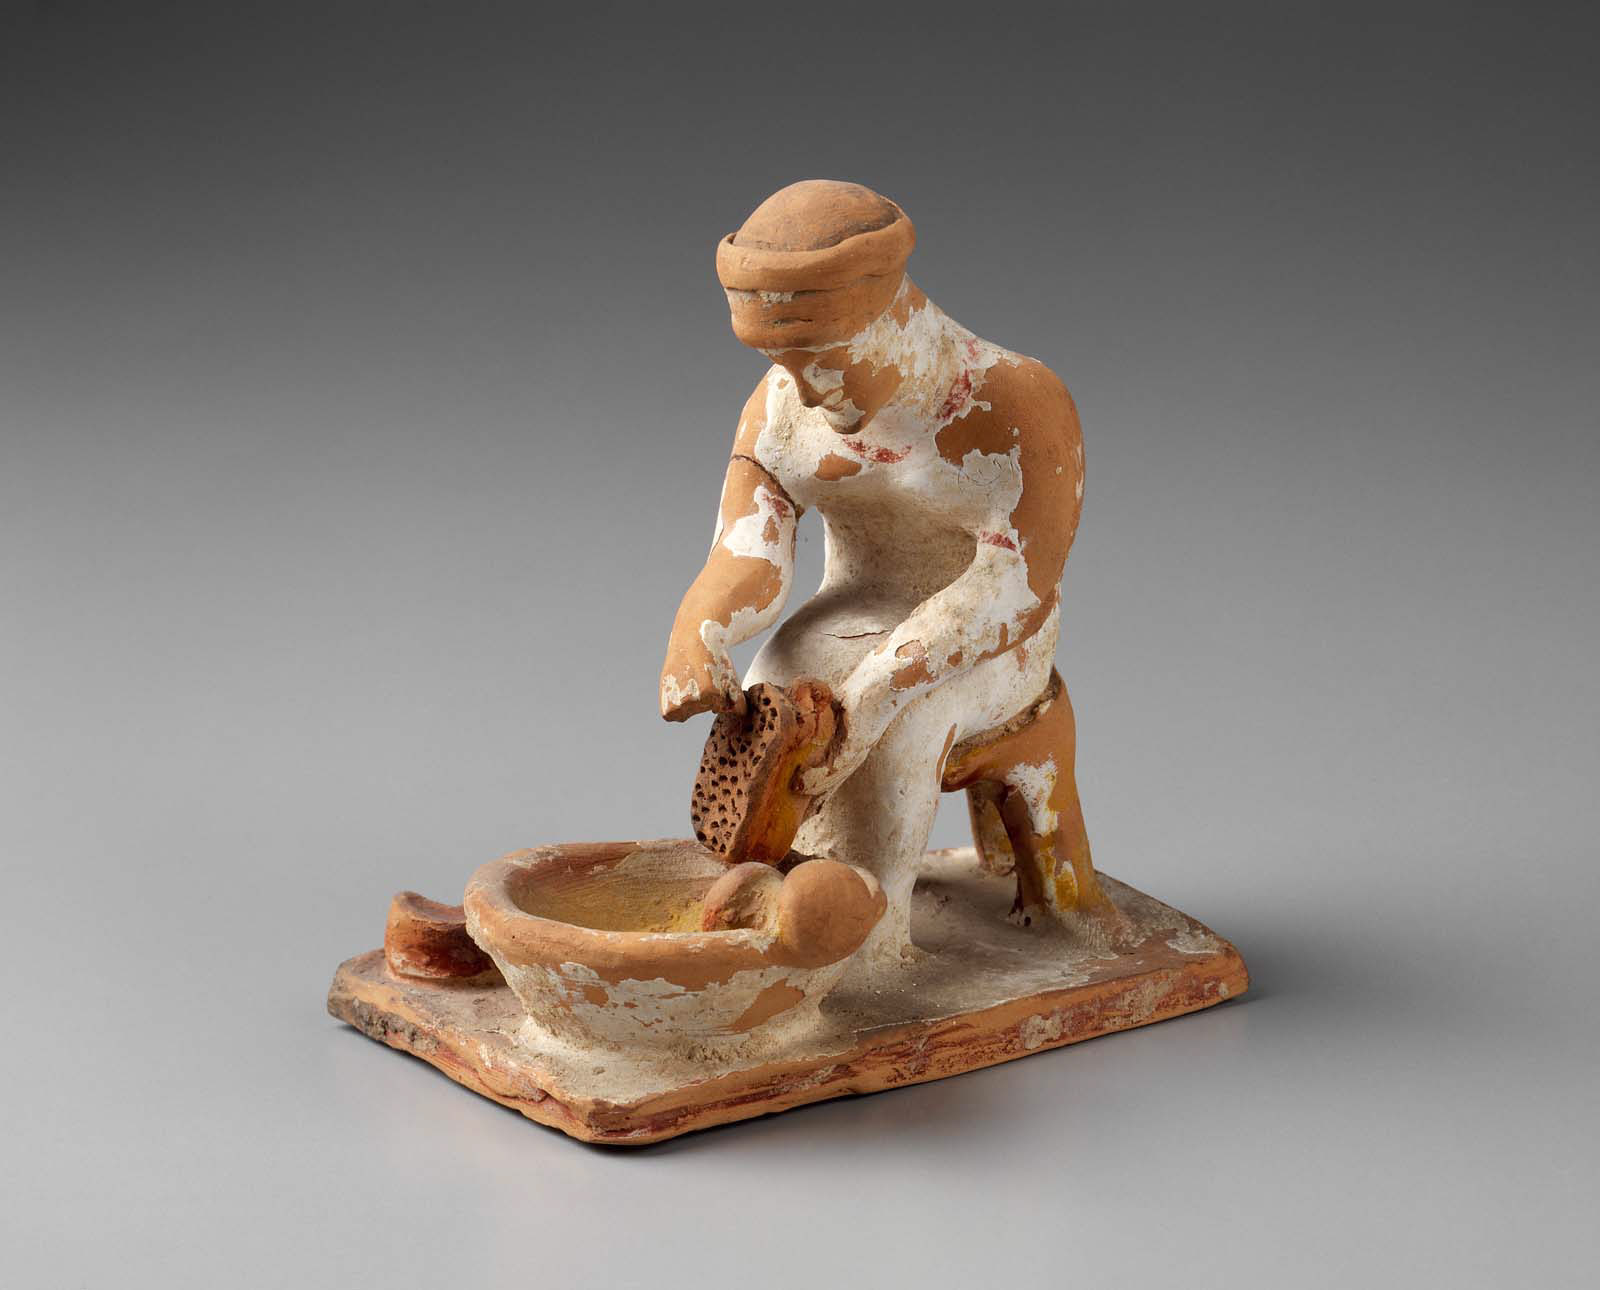 Woman grating cheese - Greek -Late Archaic Period -Early 5th century B.C.